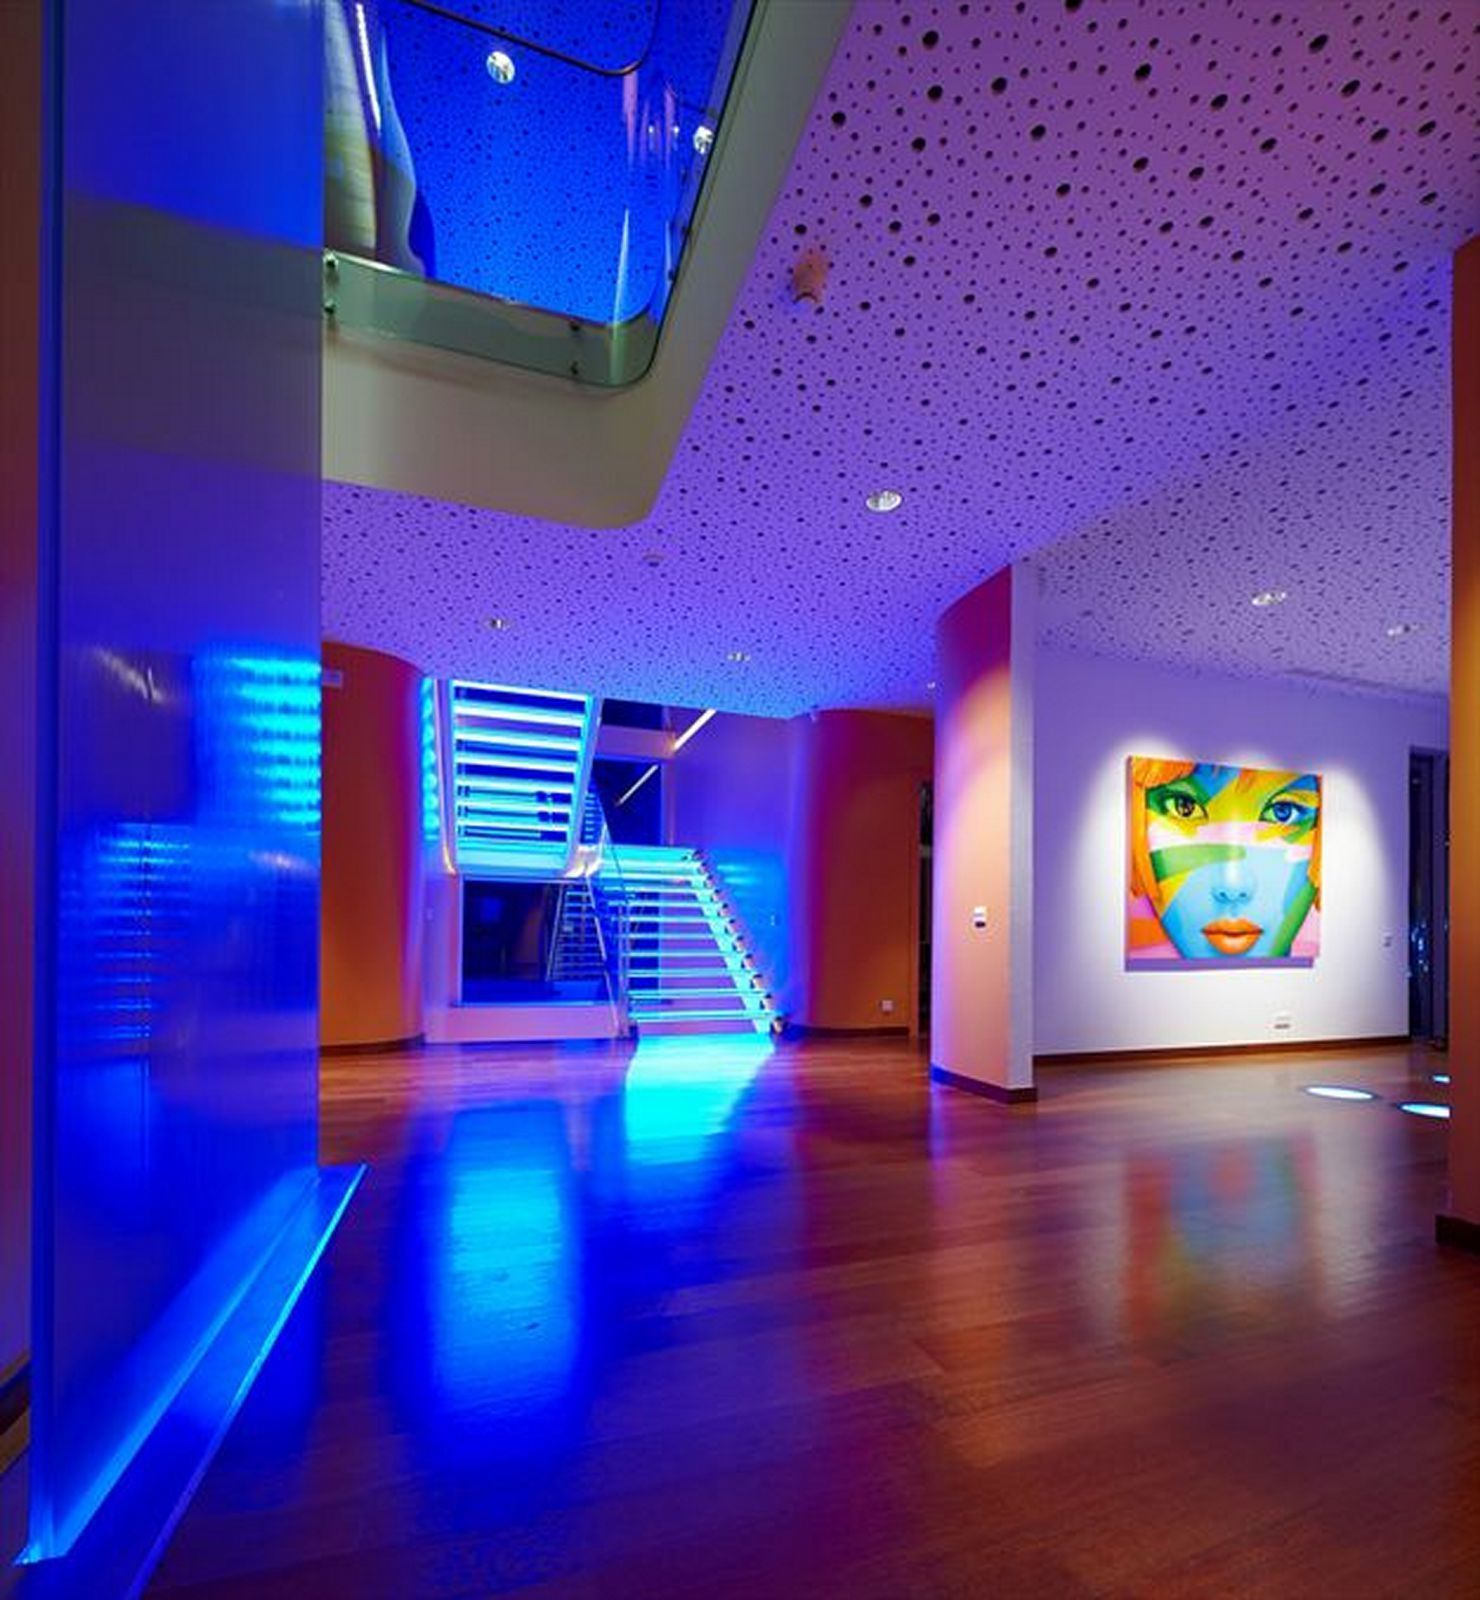 Led Lighting Ideas For Home With Images Led Light Design Ceiling Design False Ceiling Design